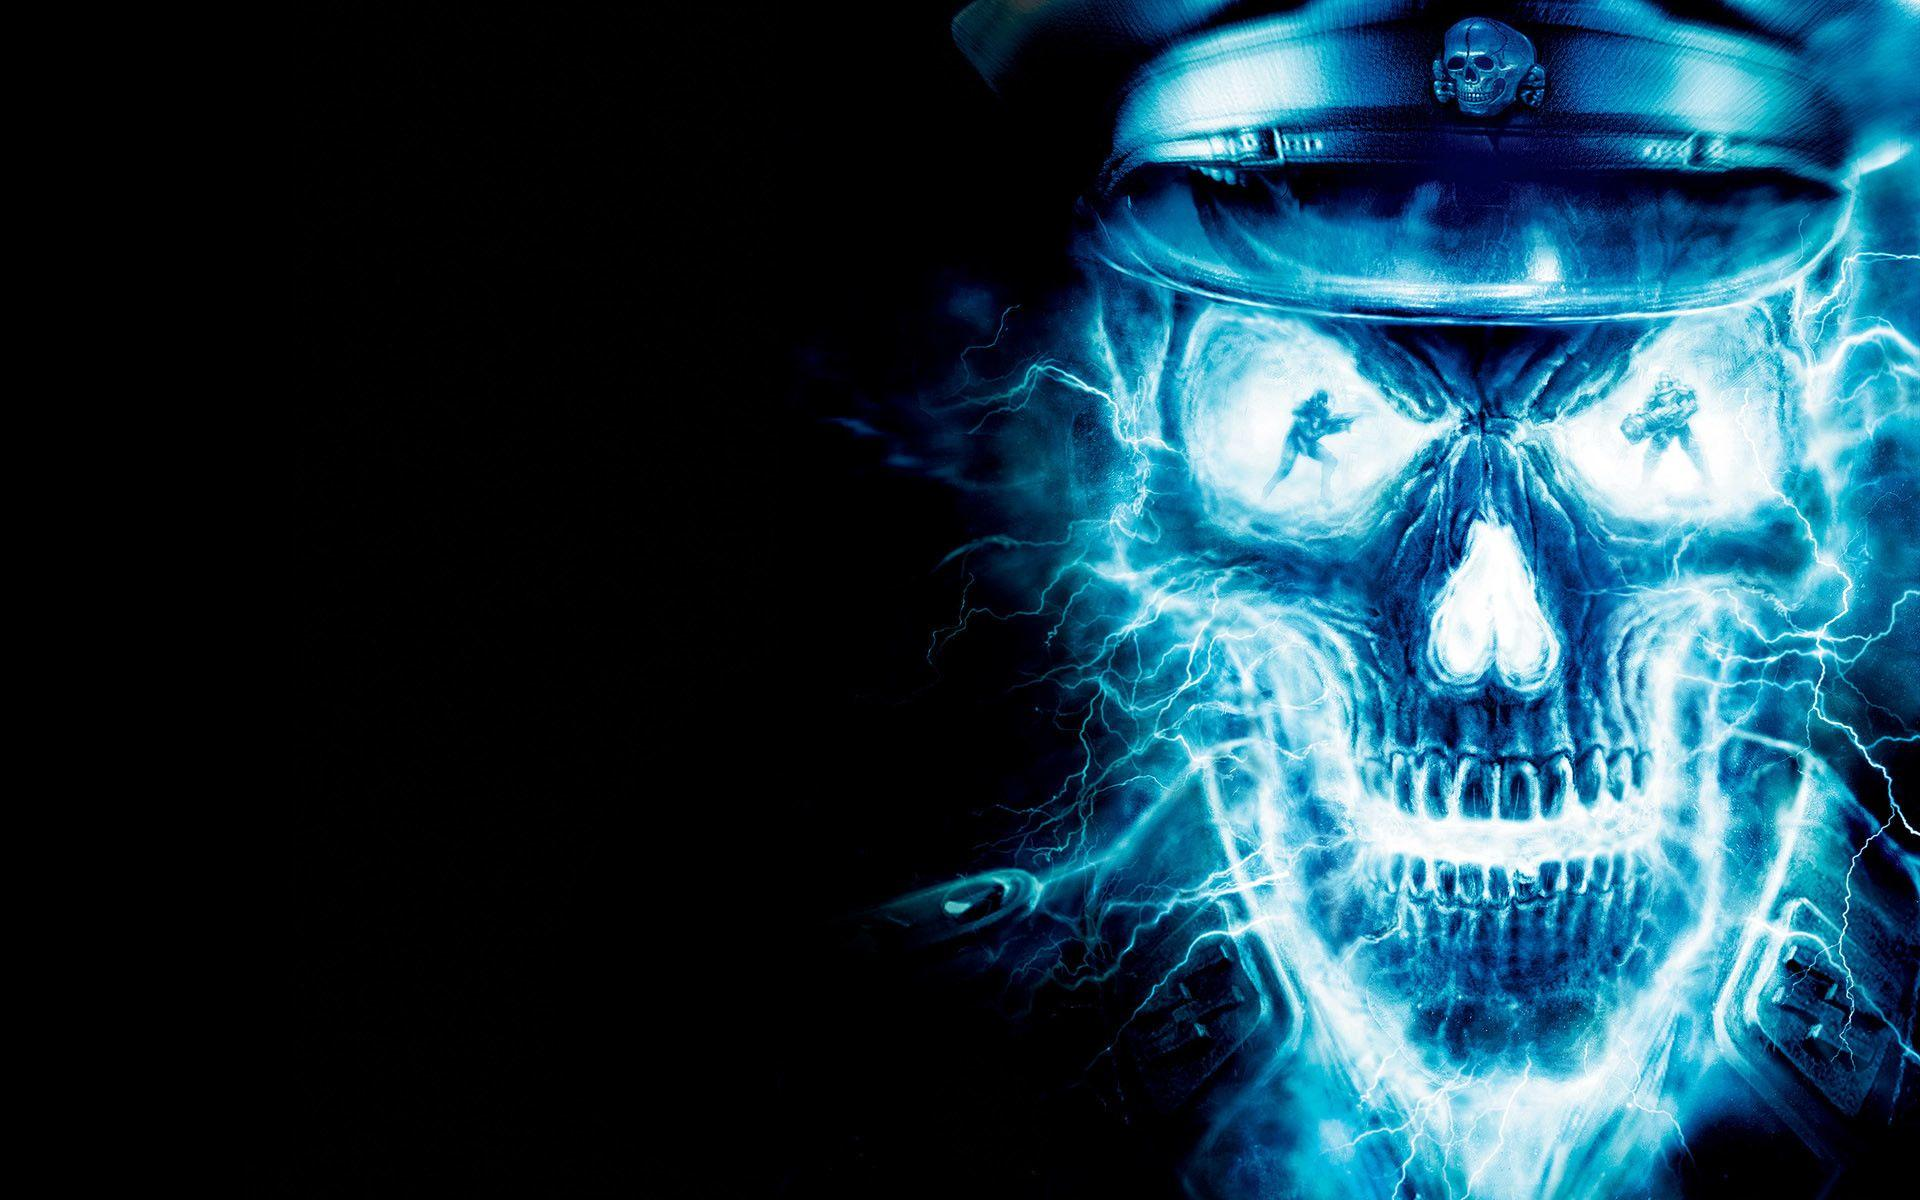 Blue Ghost Rider Wallpapers